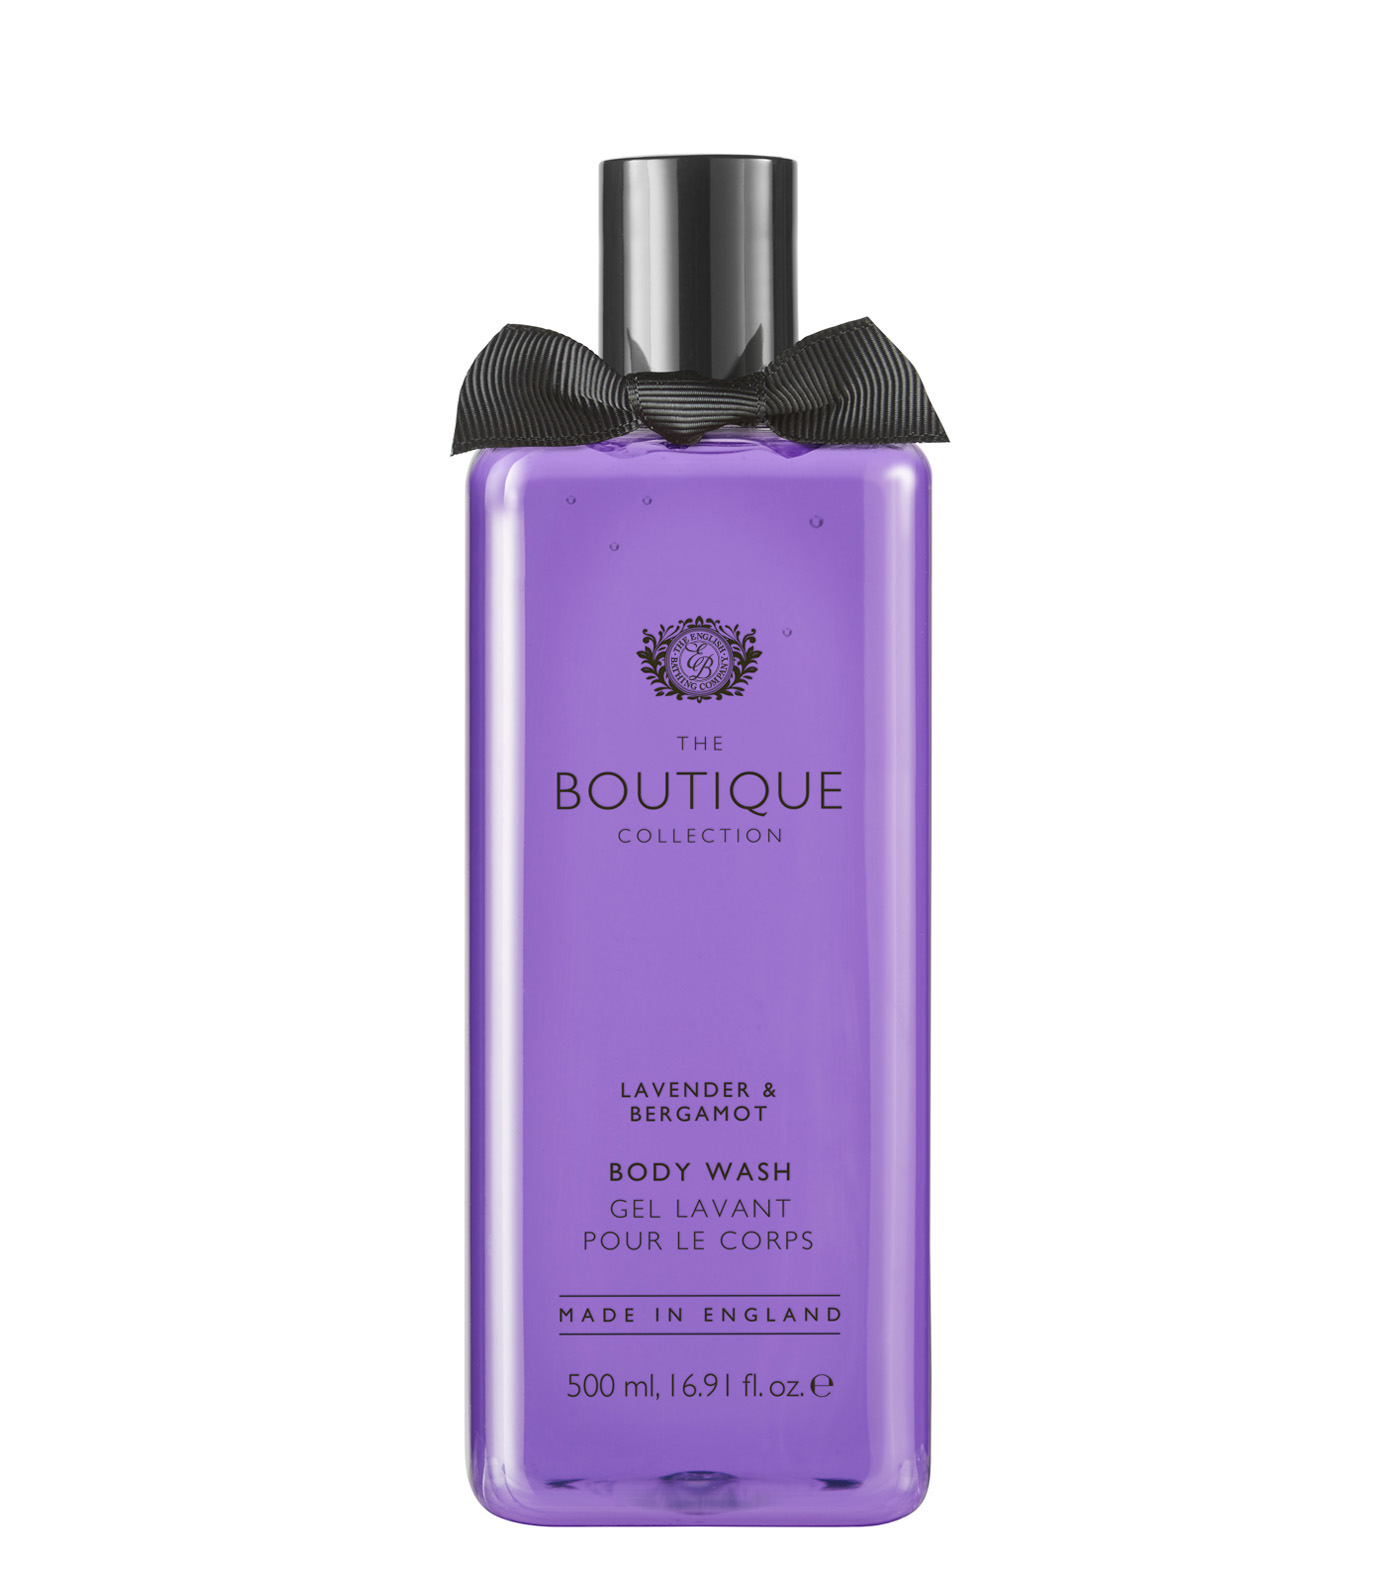 Lavender & Bergamot 500ml Body Wash